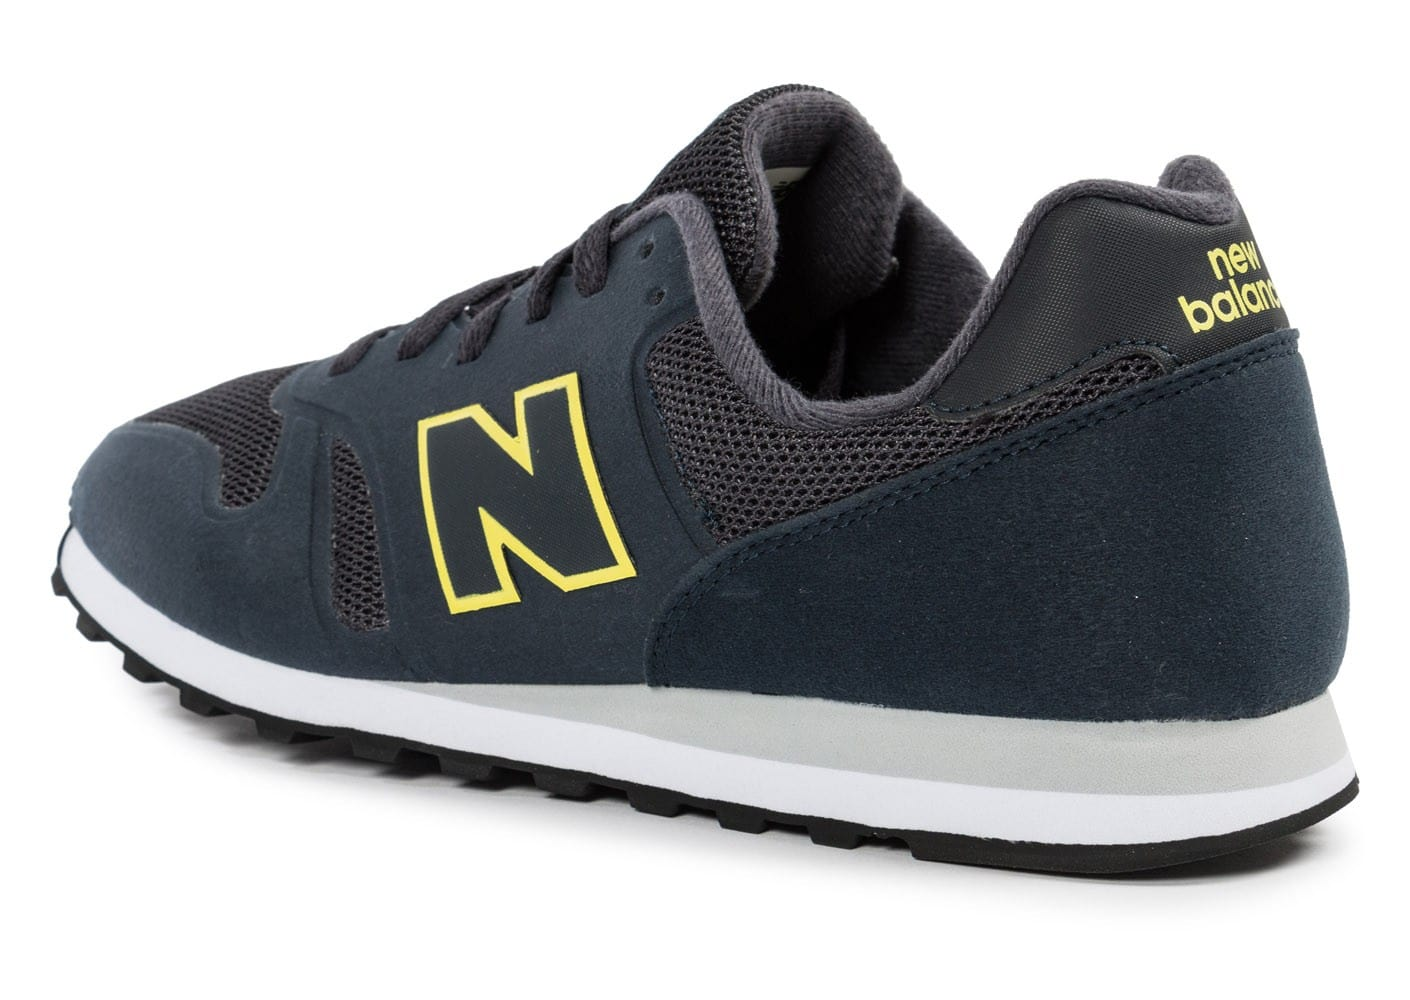 check out fbbf9 0cb82 0538-chaussures-new-balance-md373-ny-bleu-marine-vue-arriere 1.jpg